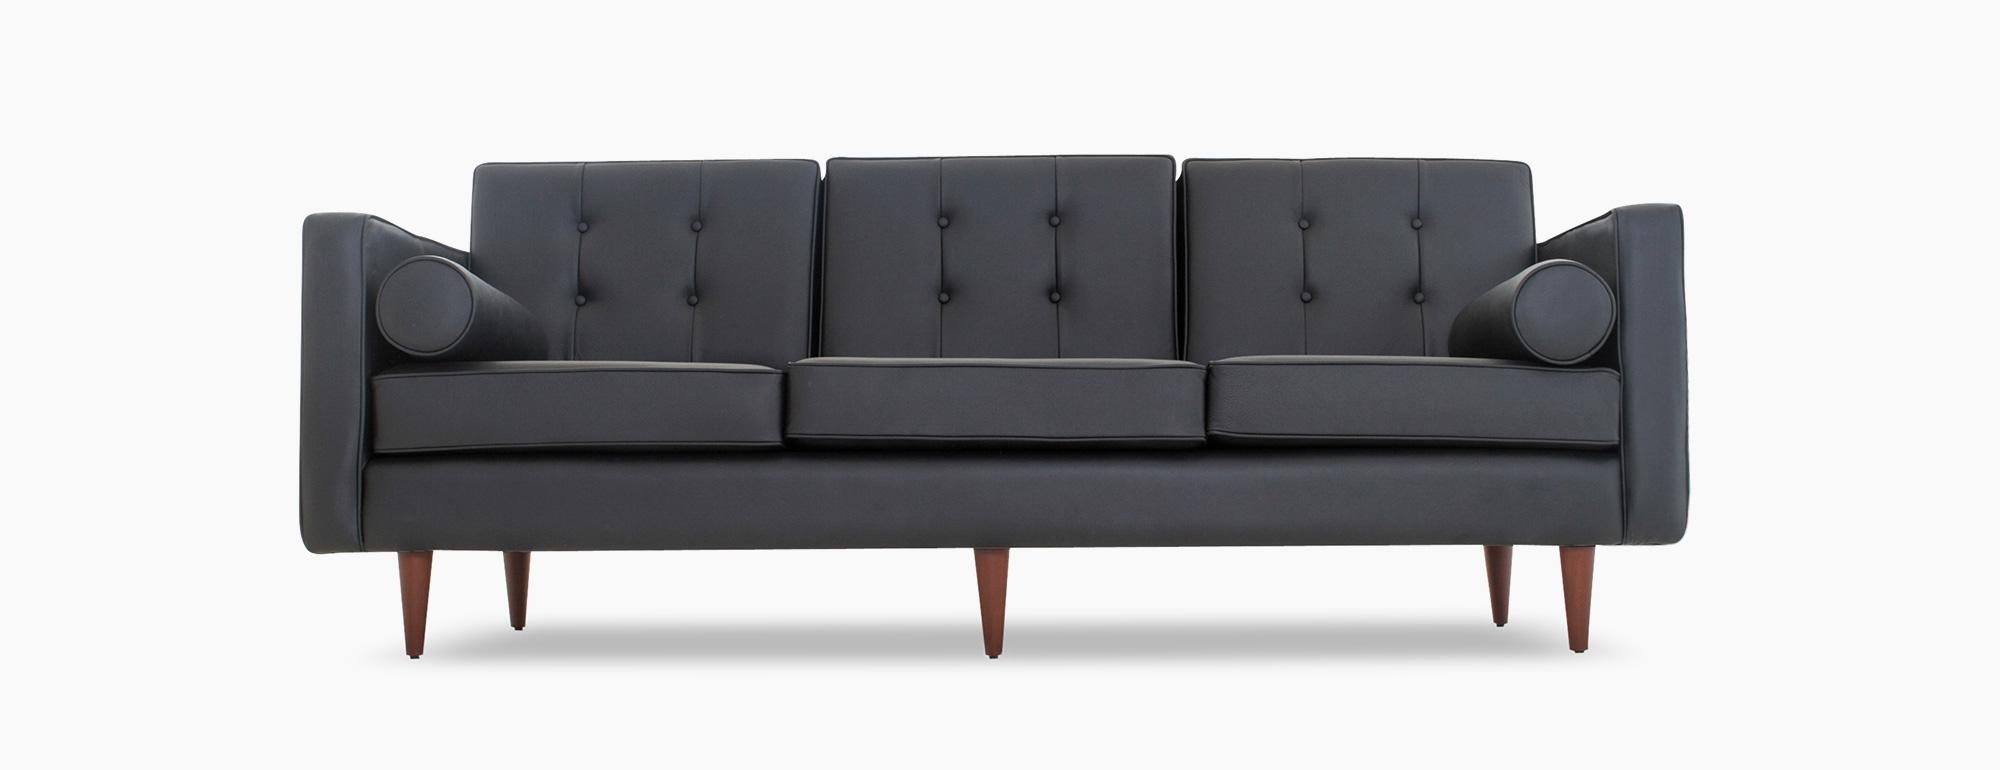 Braxton Leather Sofa | Joybird Pertaining To Braxton Sofa (View 2 of 20)